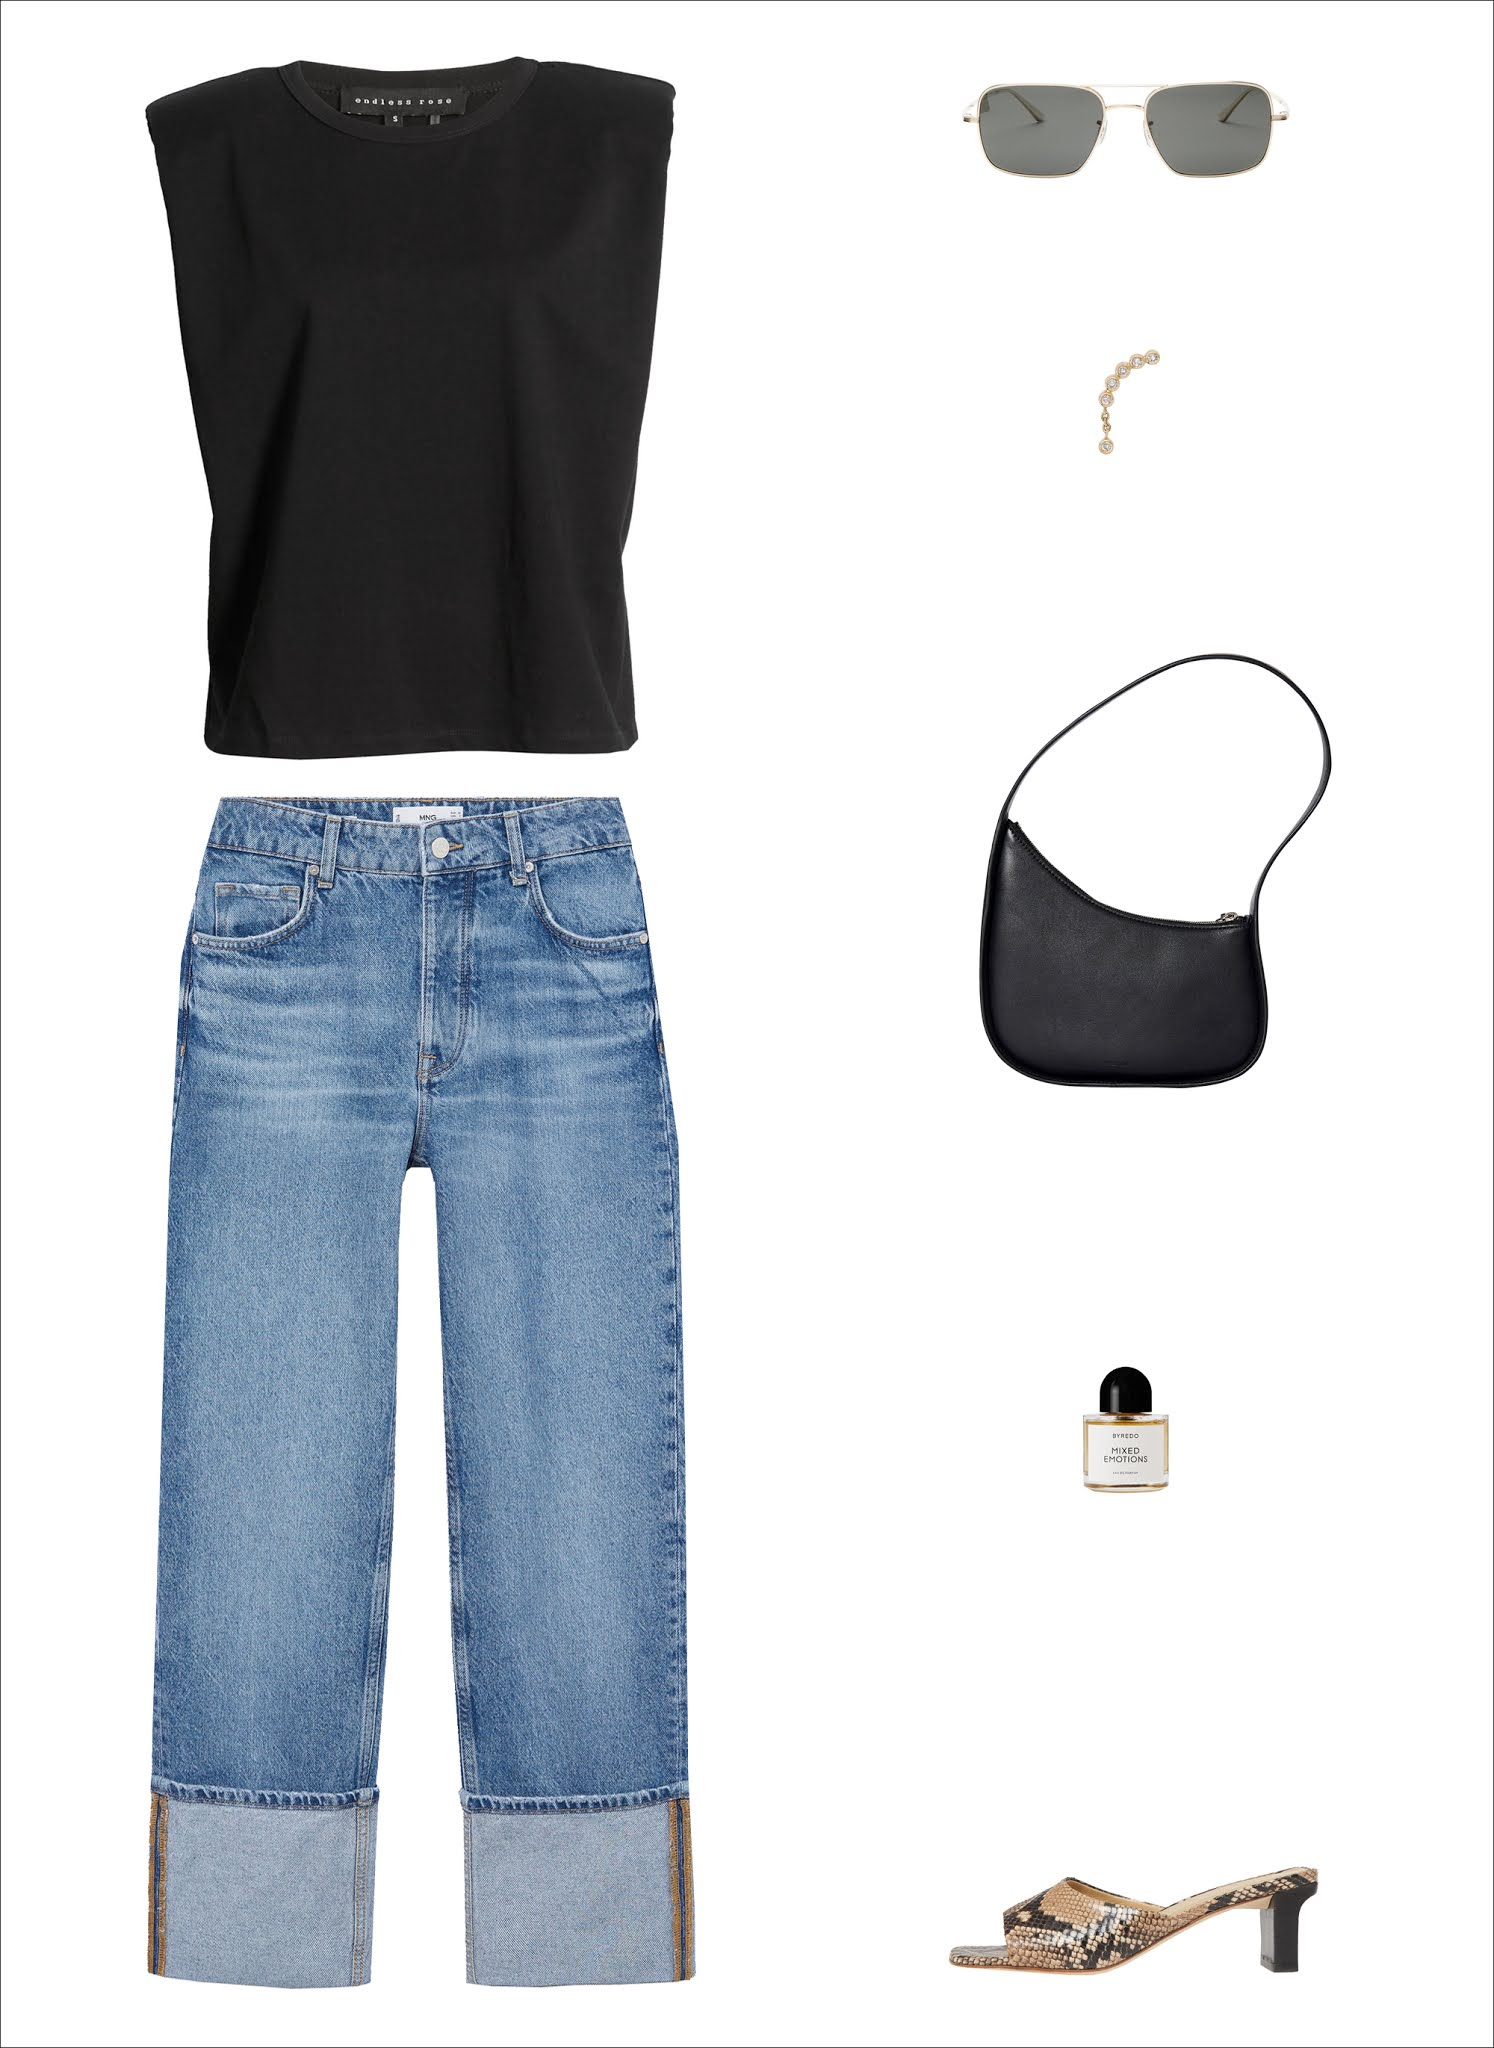 Here's How I'd Wear a Padded-Shoulder Tank Top in 2021 — Casual spring outfit idea with a black shoulder-pad muscle tank, aviator sunglasses, a mini statement earring, sleek black shoulder bag, cuffed straight-leg jeans, and snake-print heeled slip-on sandals